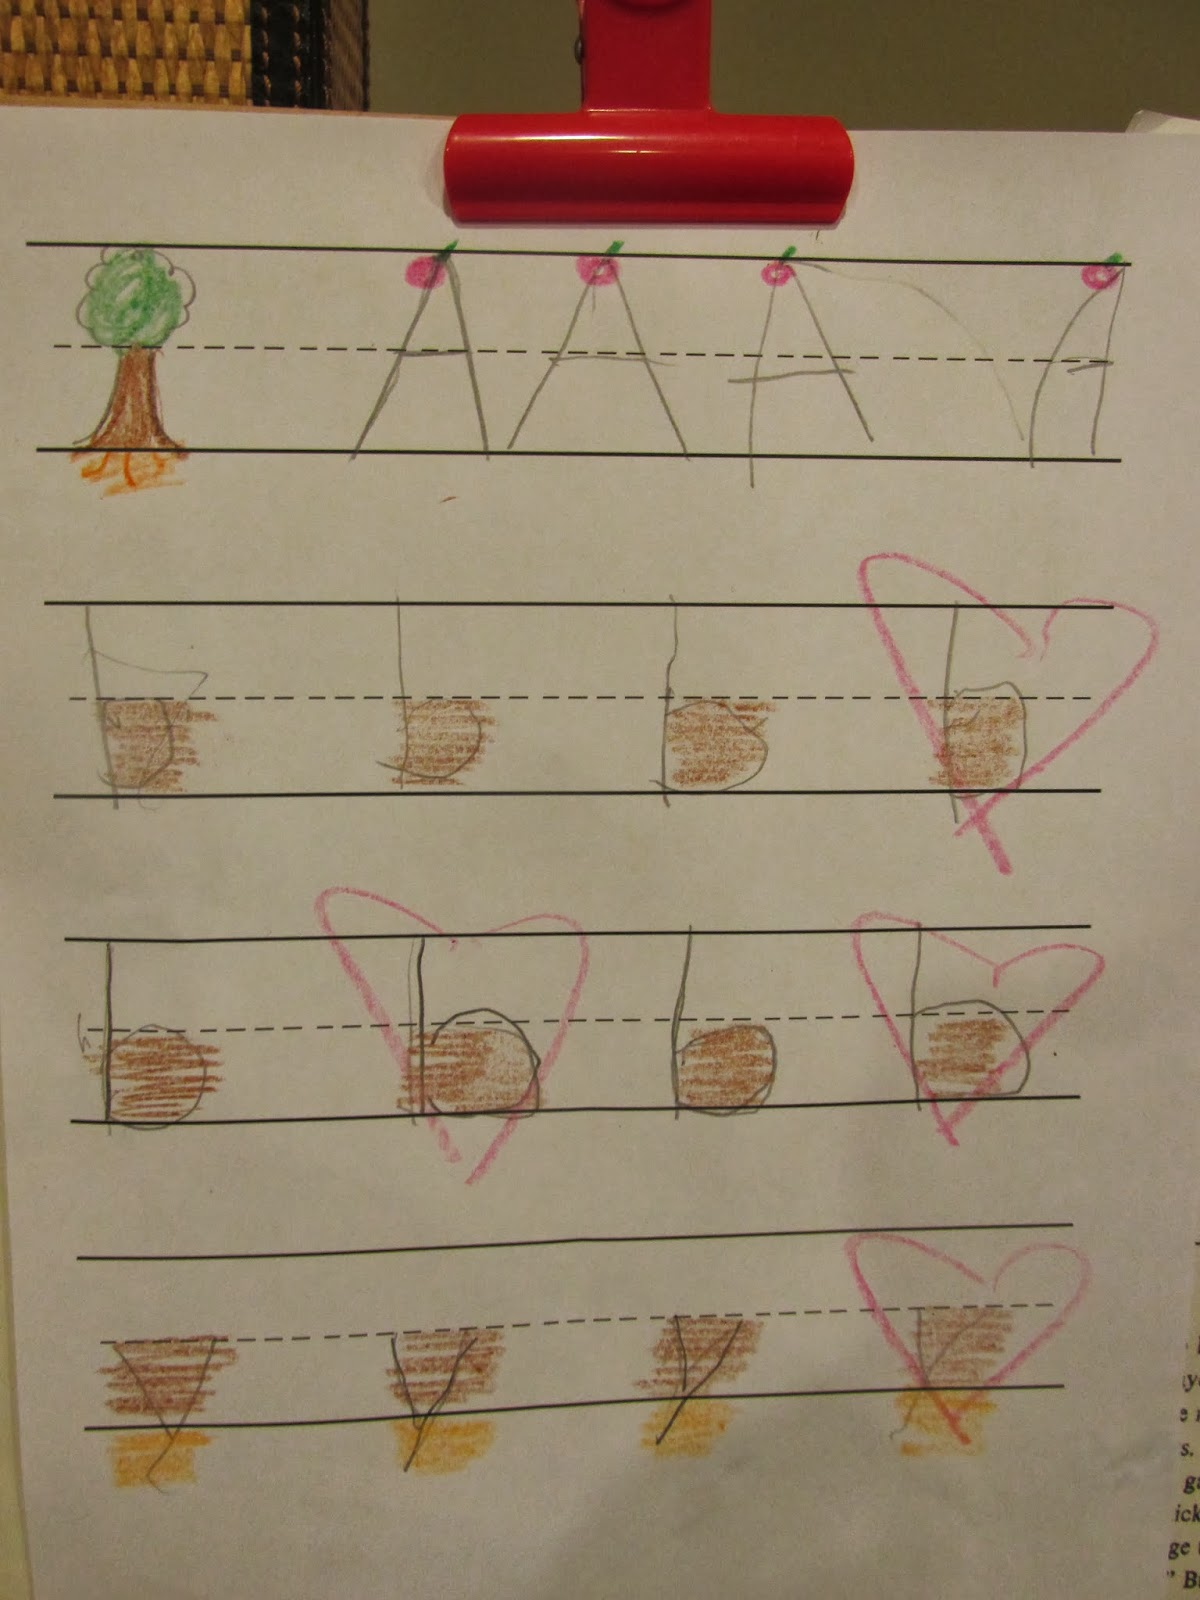 Example of using tree template in teaching preschooler how to write letters